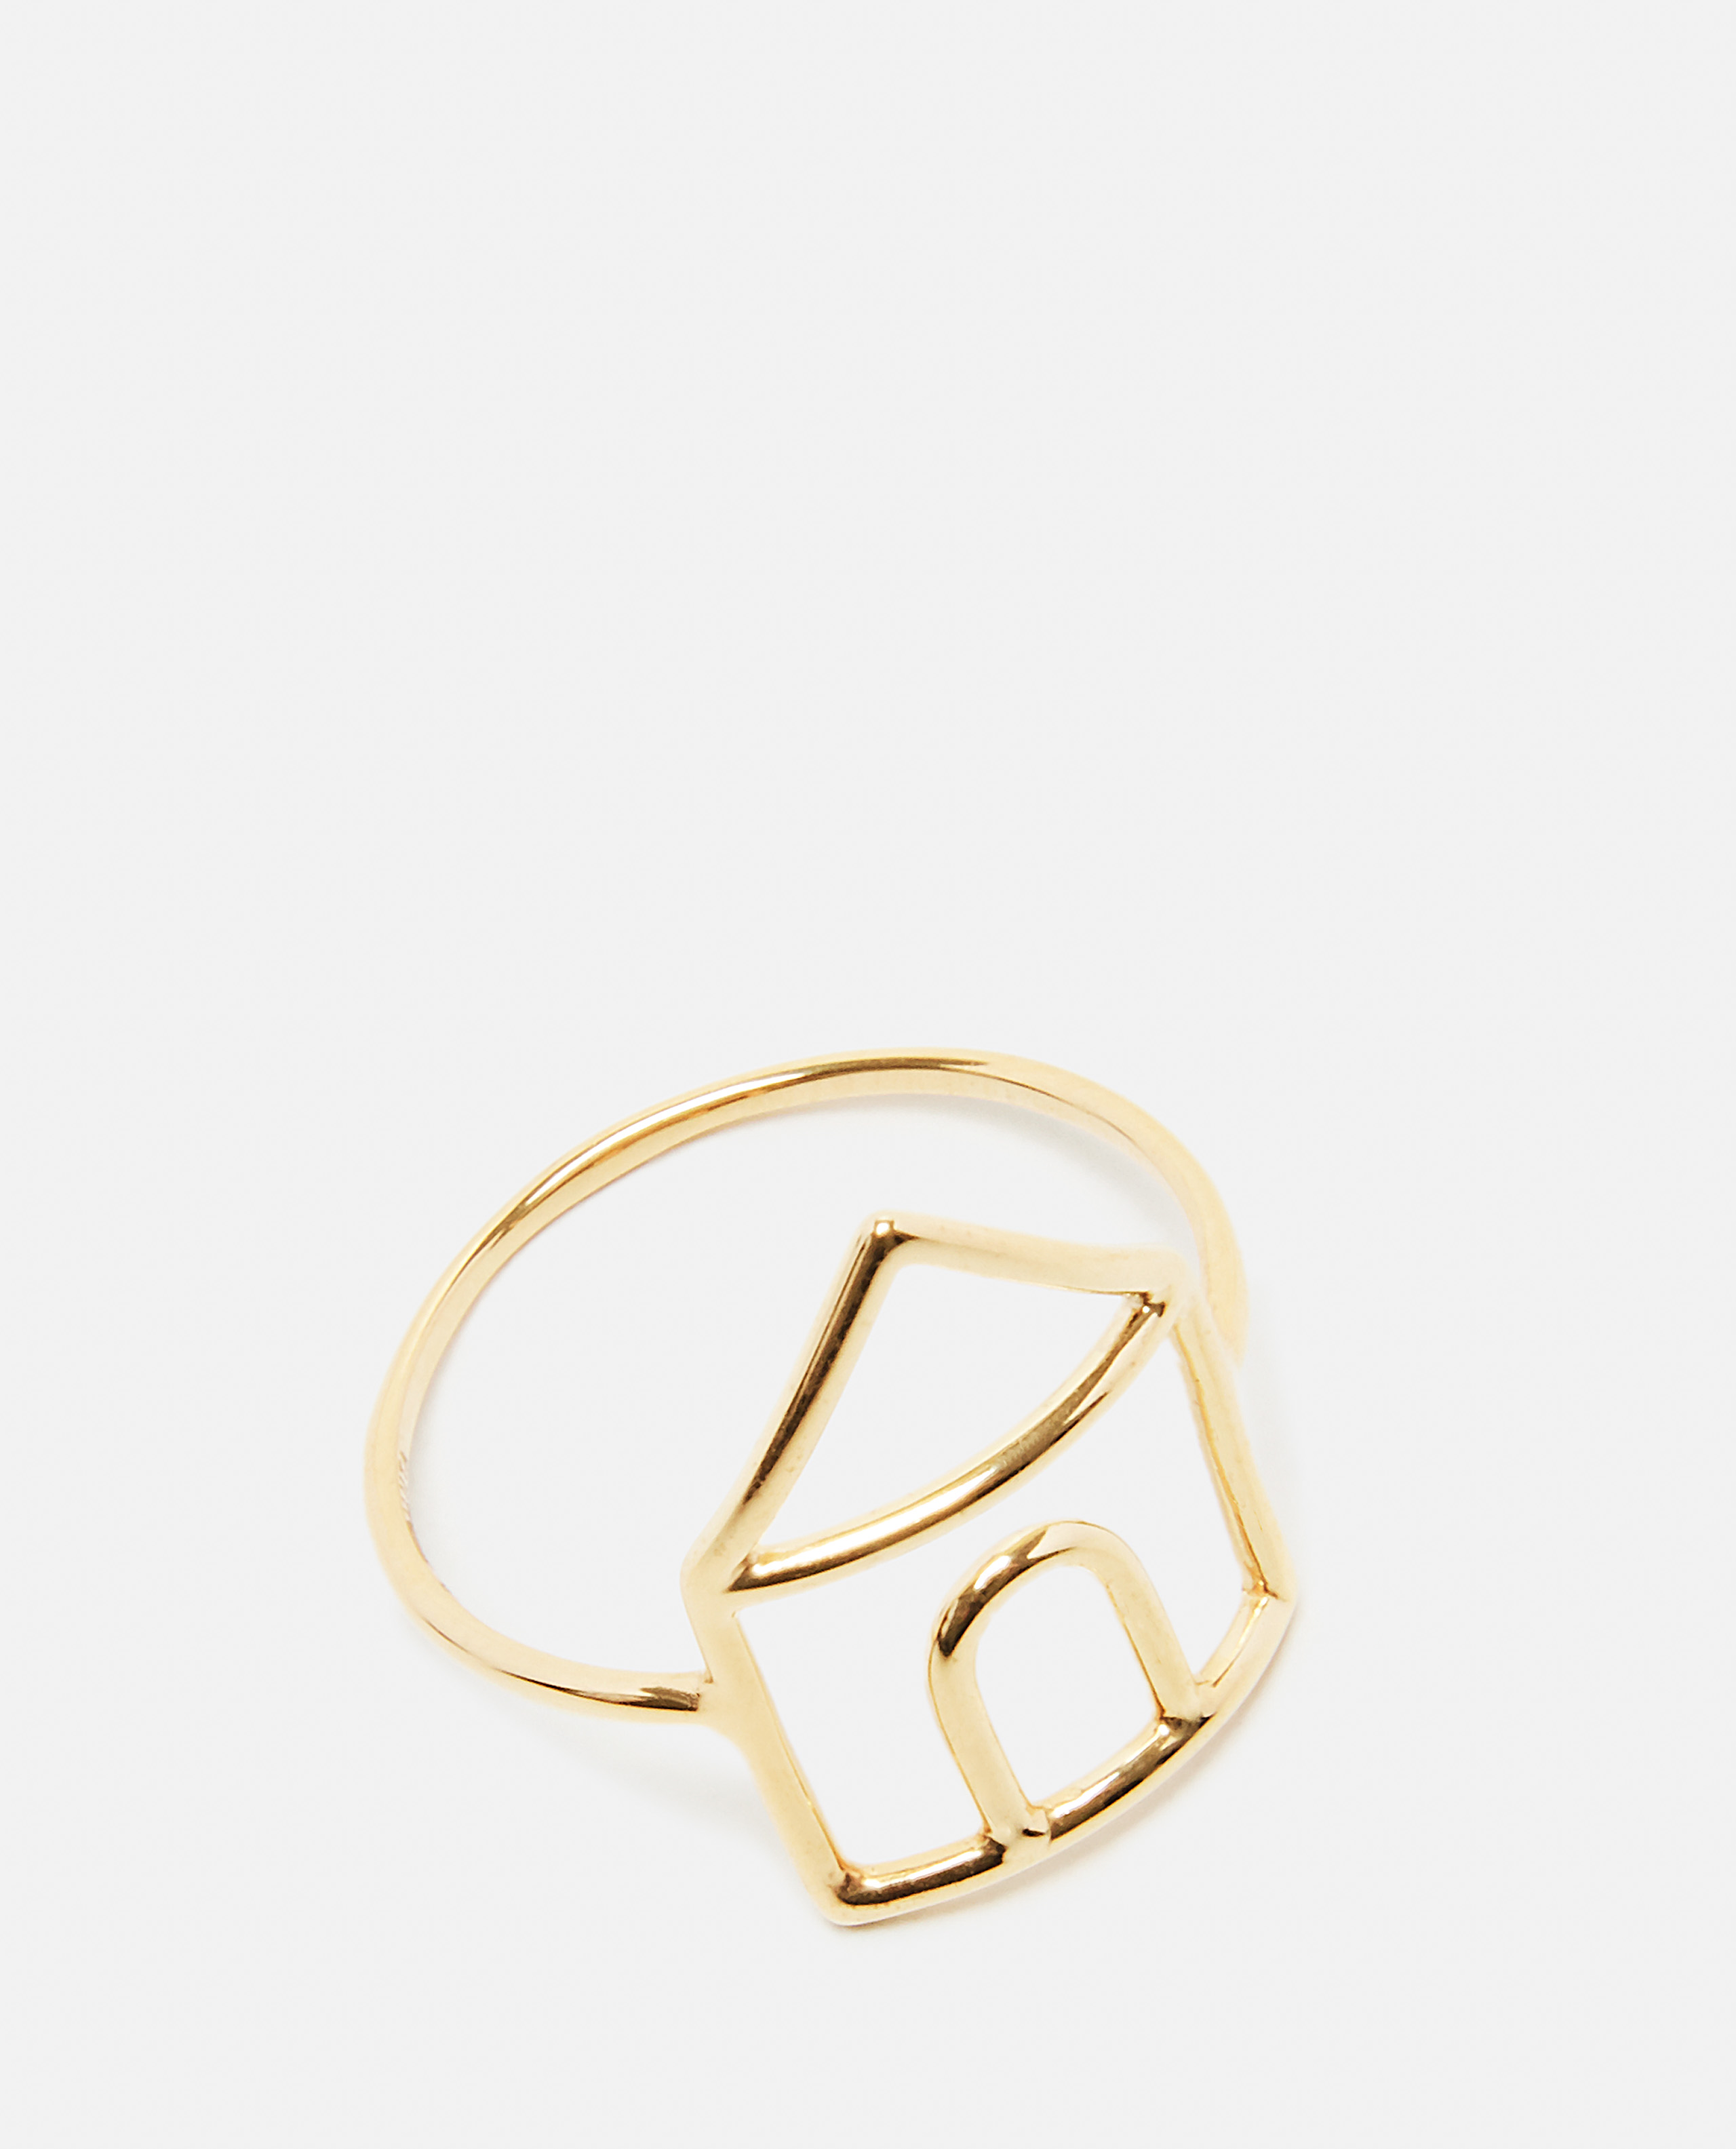 Pure Casita ring in 9kt gold